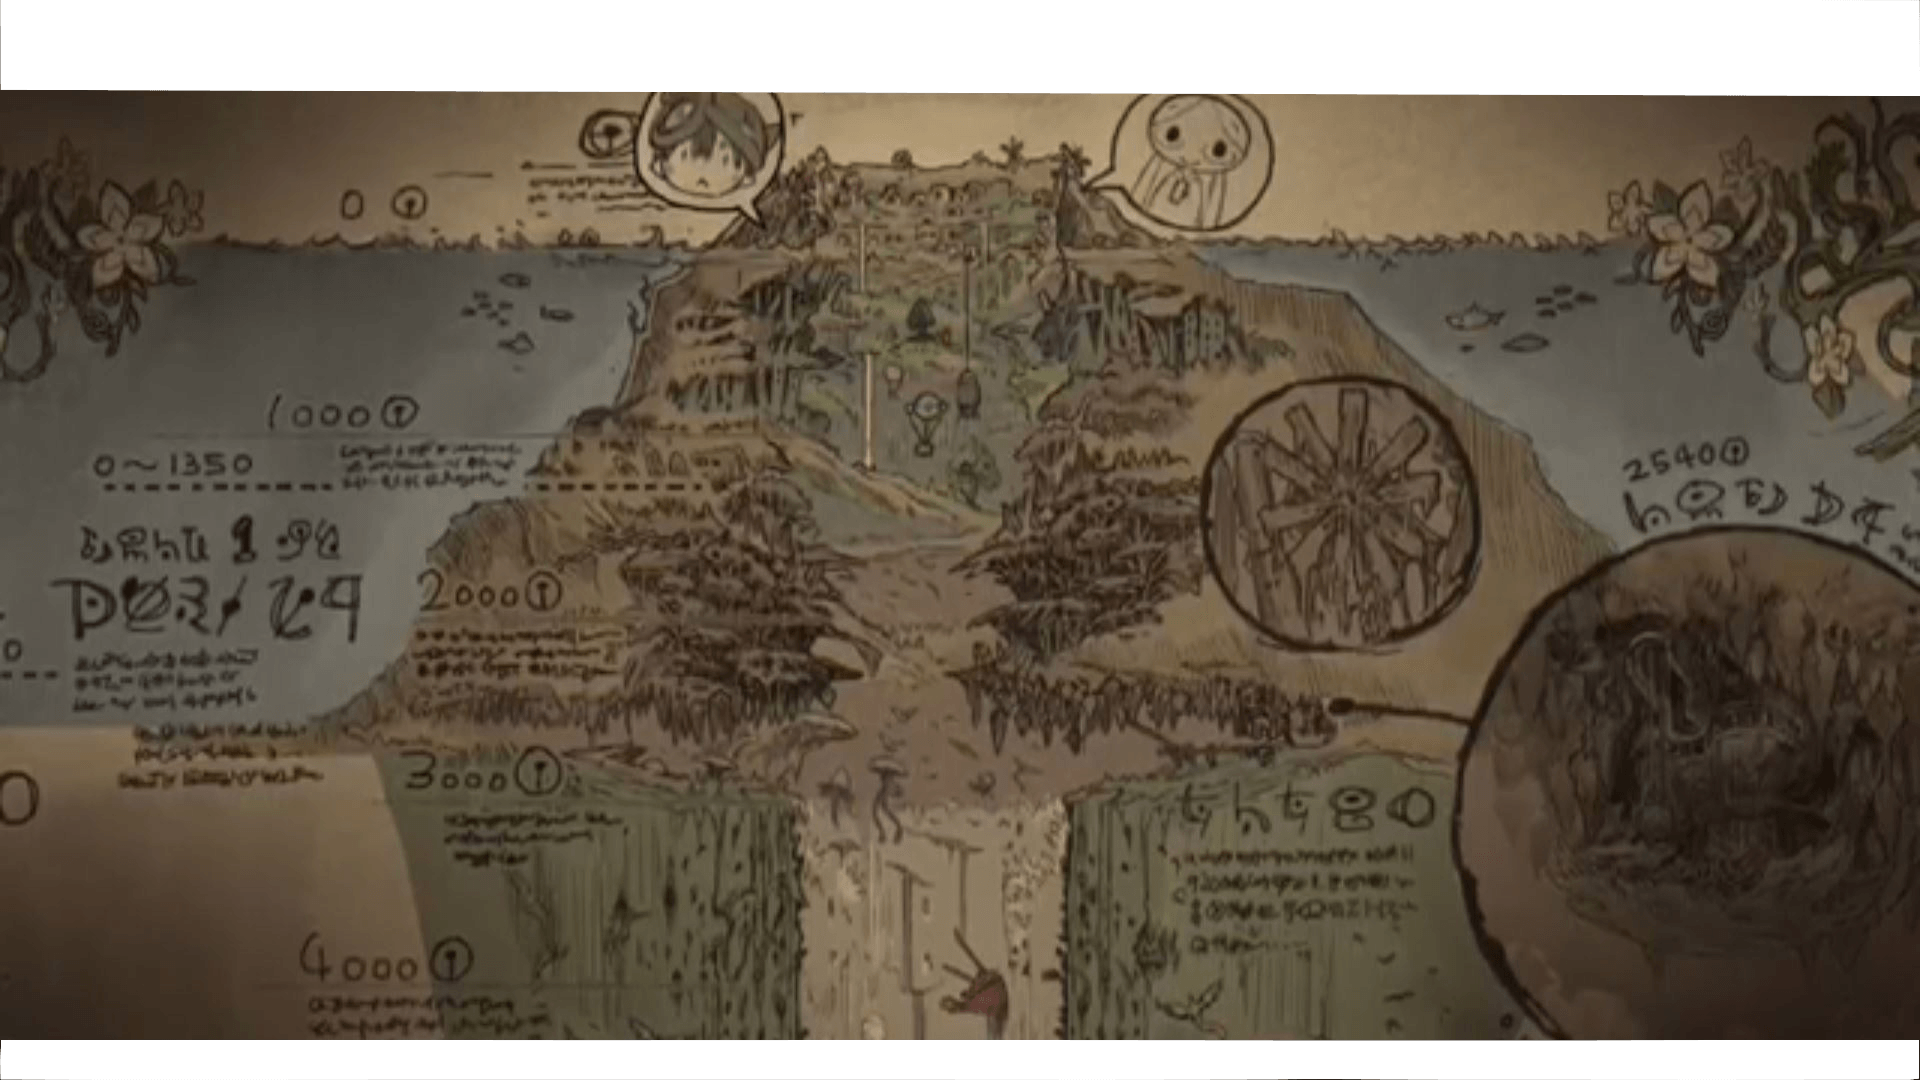 Spoilers] Made in Abyss. Possible Map at the end of the ED. : anime